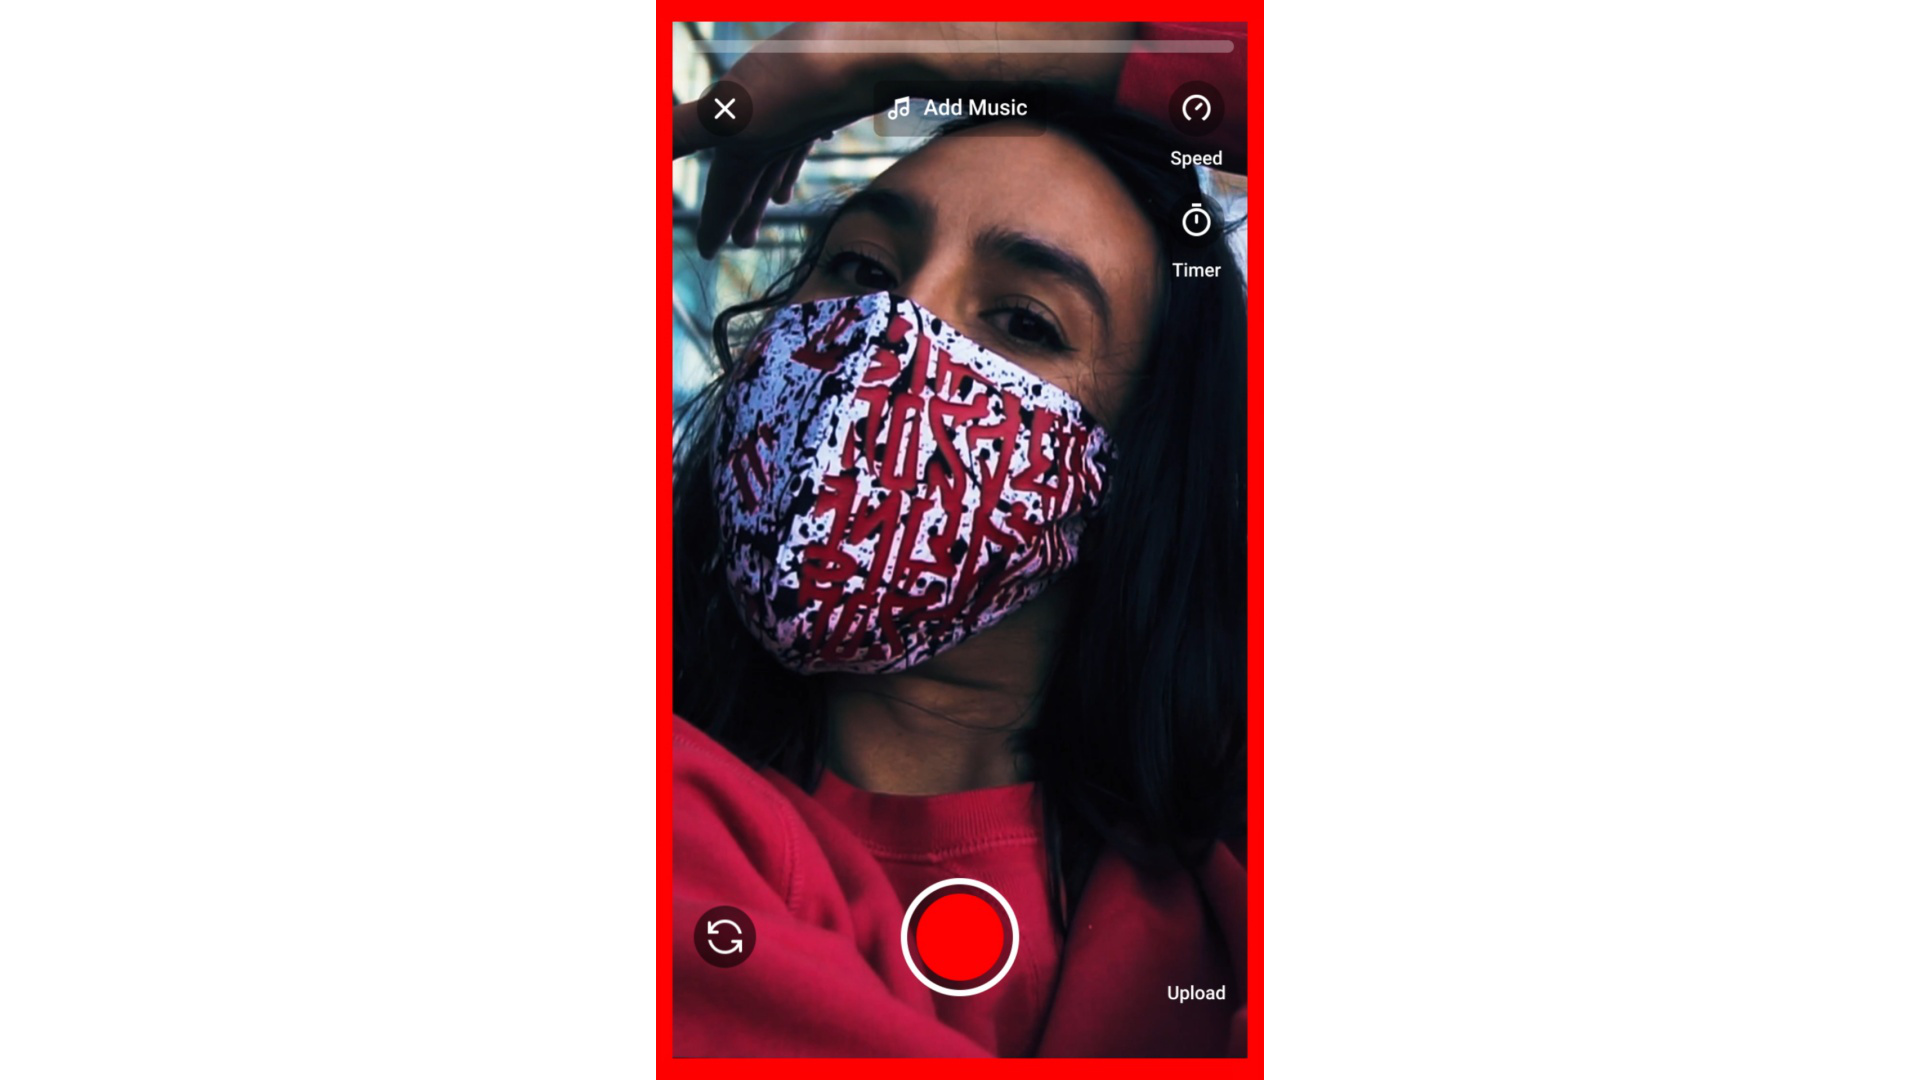 YouTube launches a rival application for TikTok